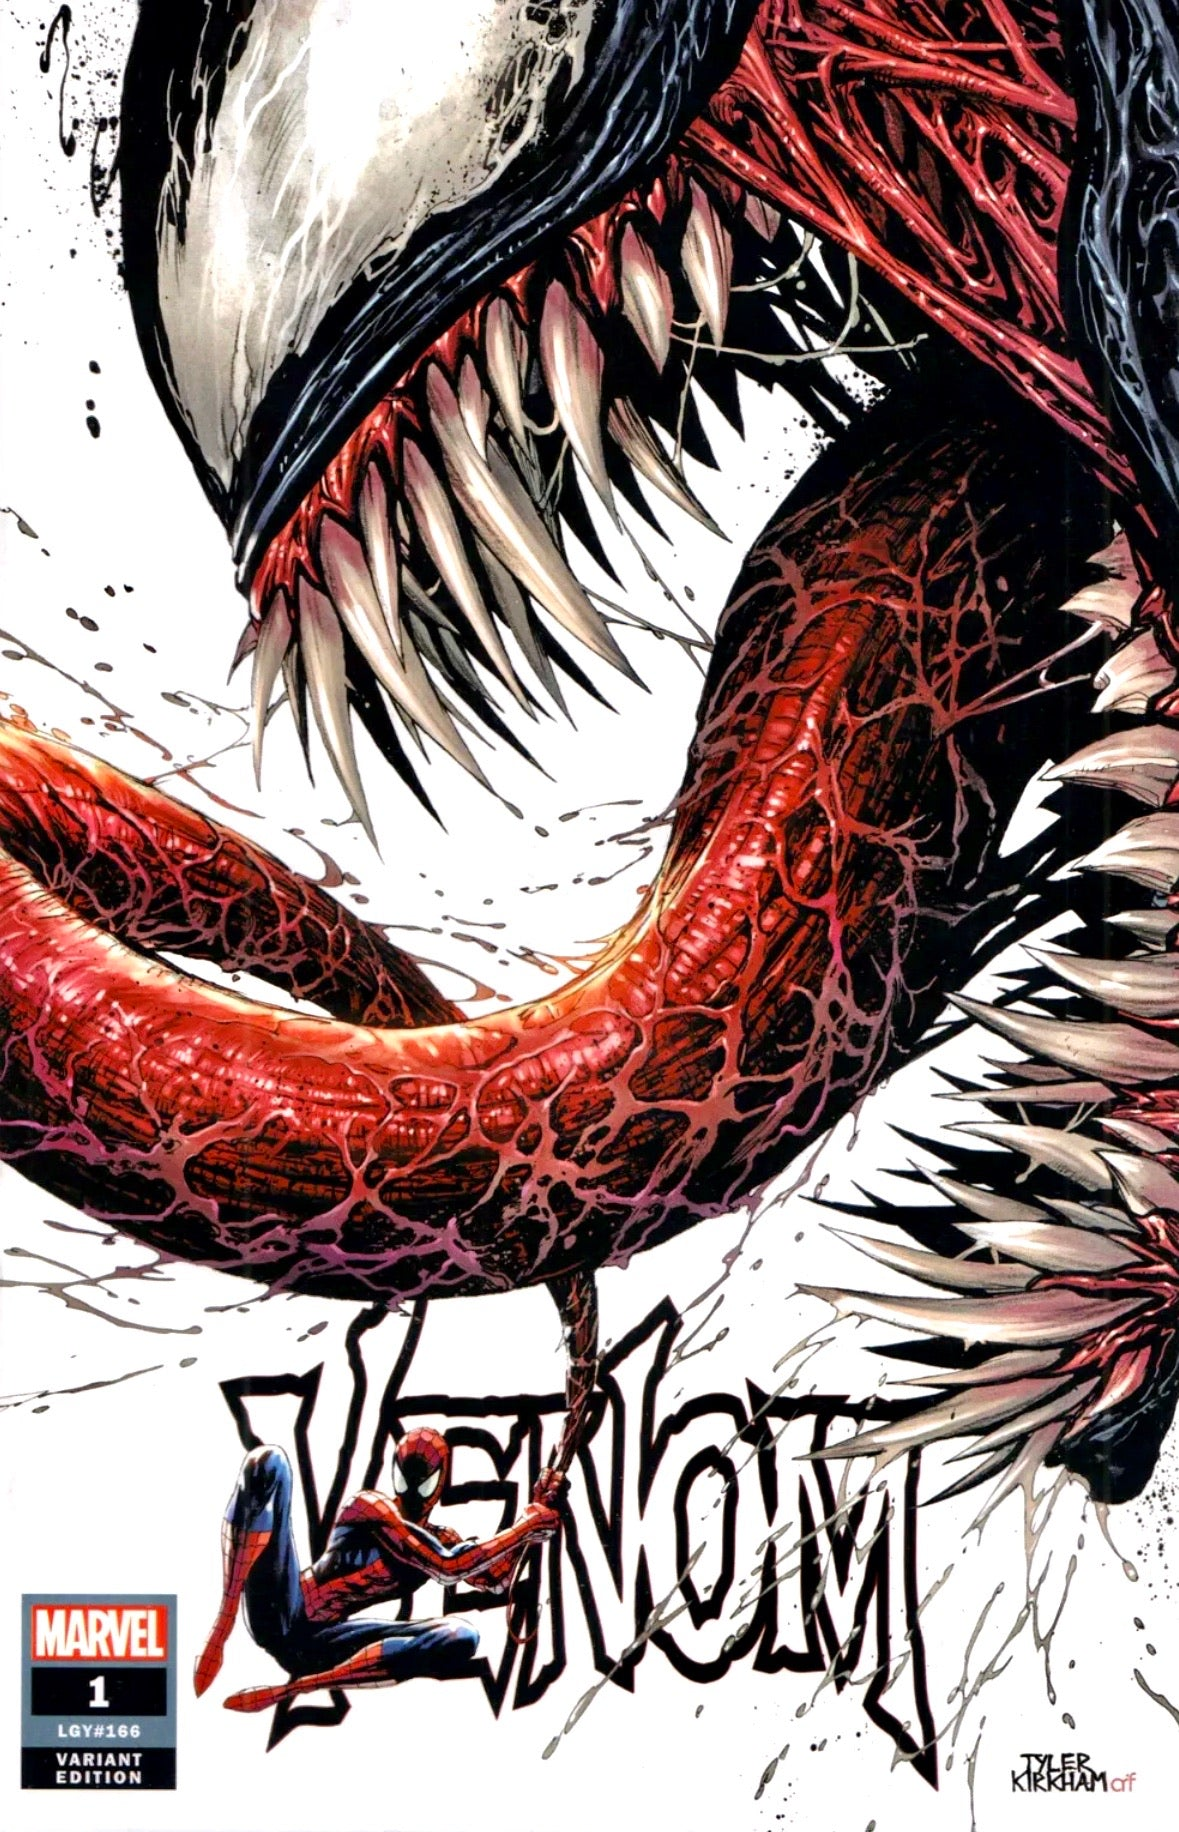 VENOM #1 TYLER KIRKHAM Exclusive Trade Dress Variant